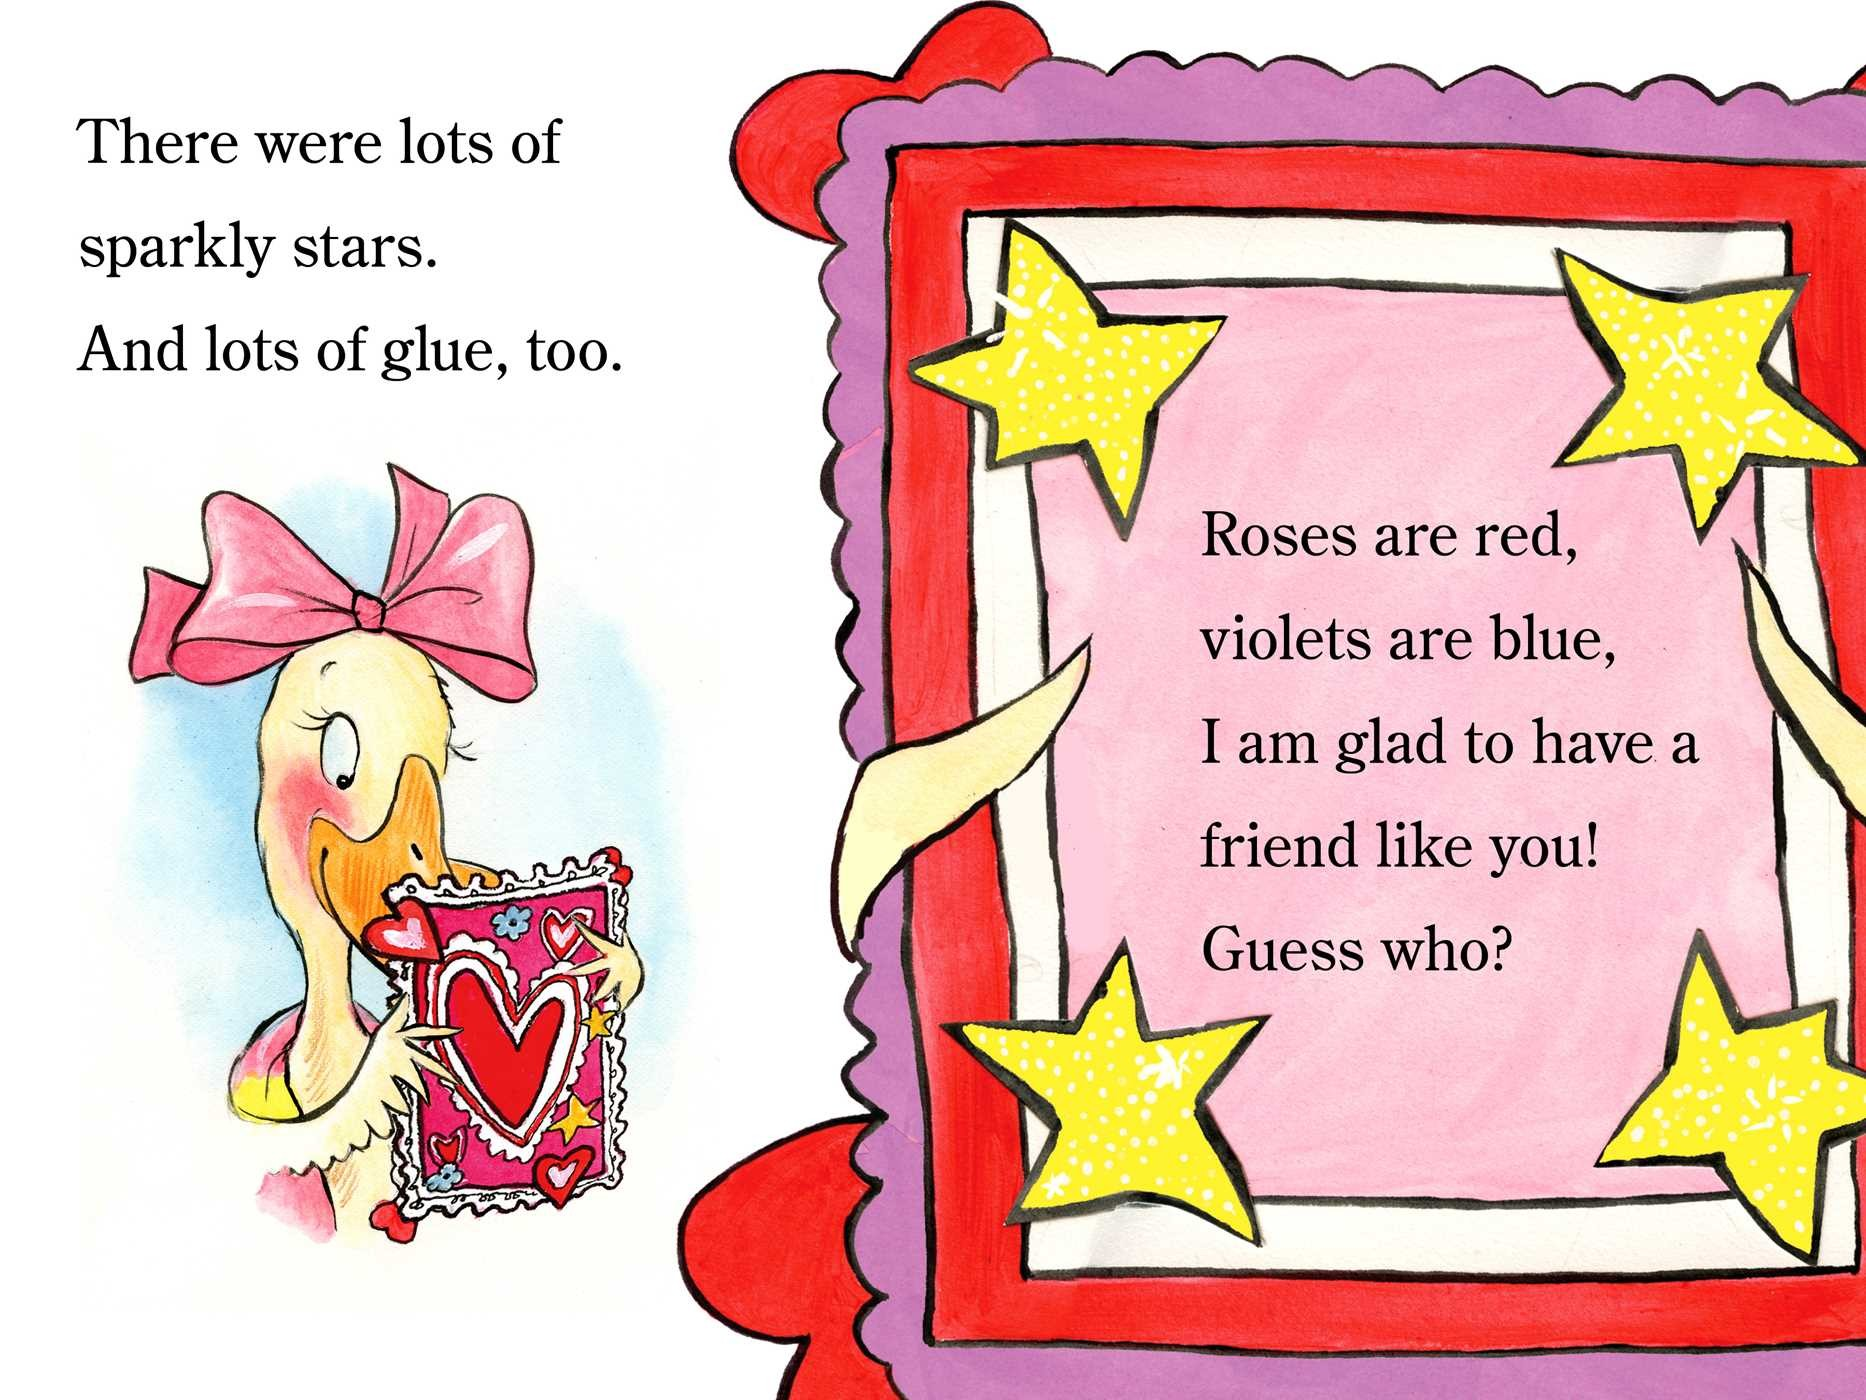 Katy duck and the secret valentine 9781442498099.in02